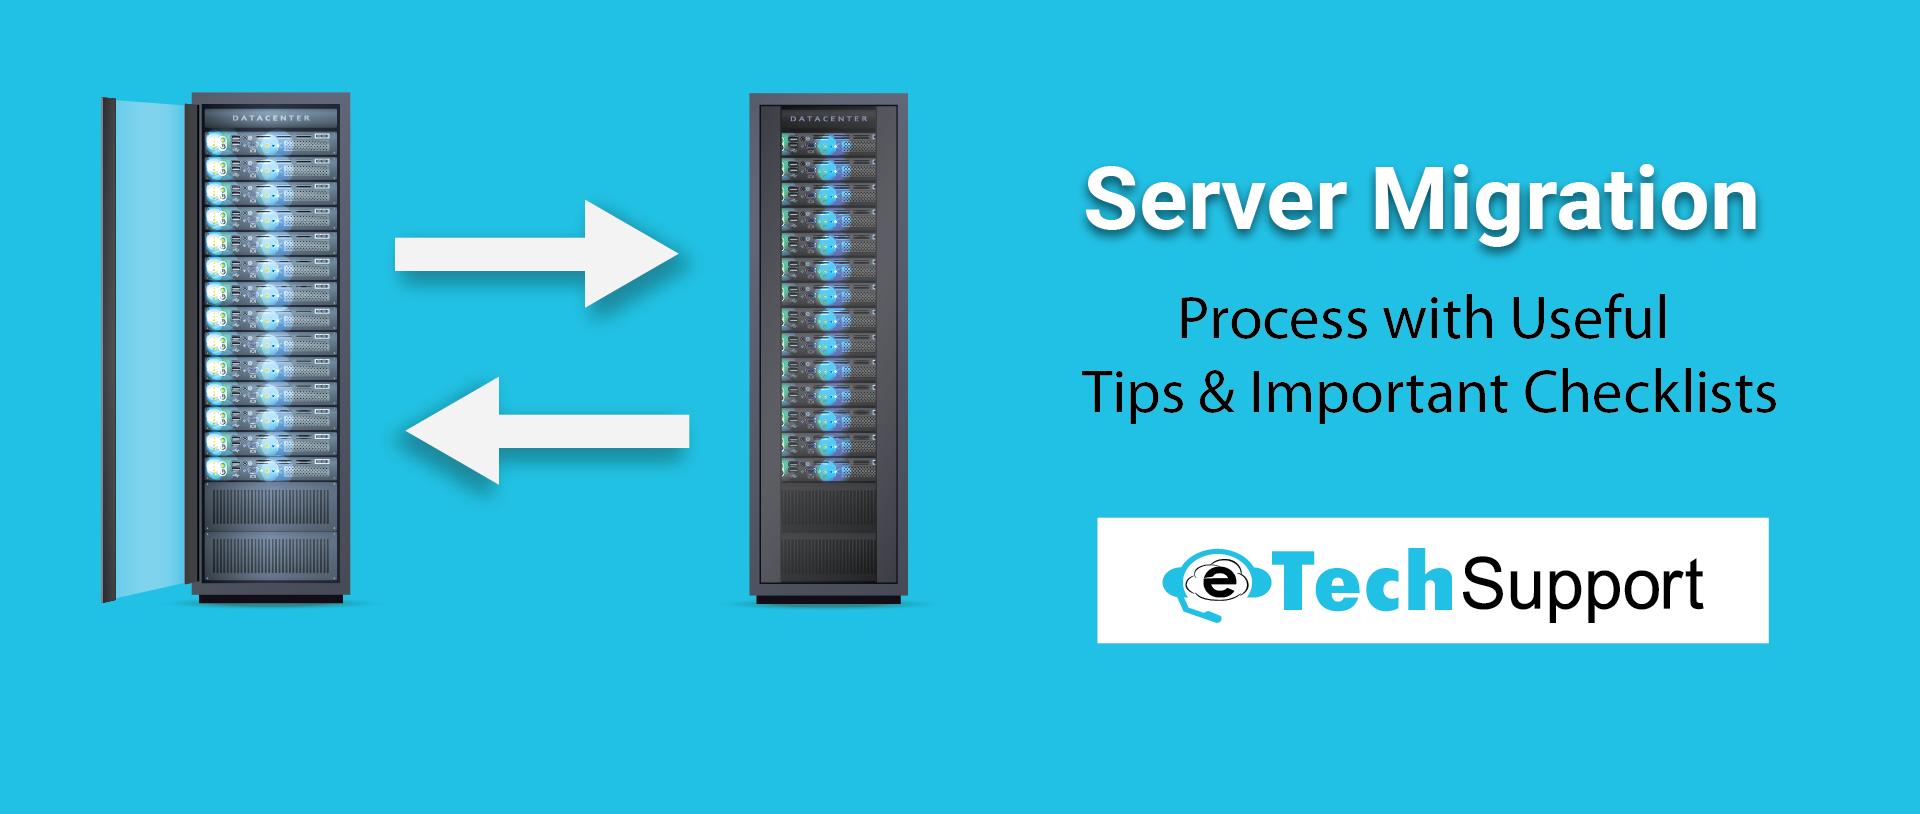 Server Migration Process with Useful Tips and Important Checklists